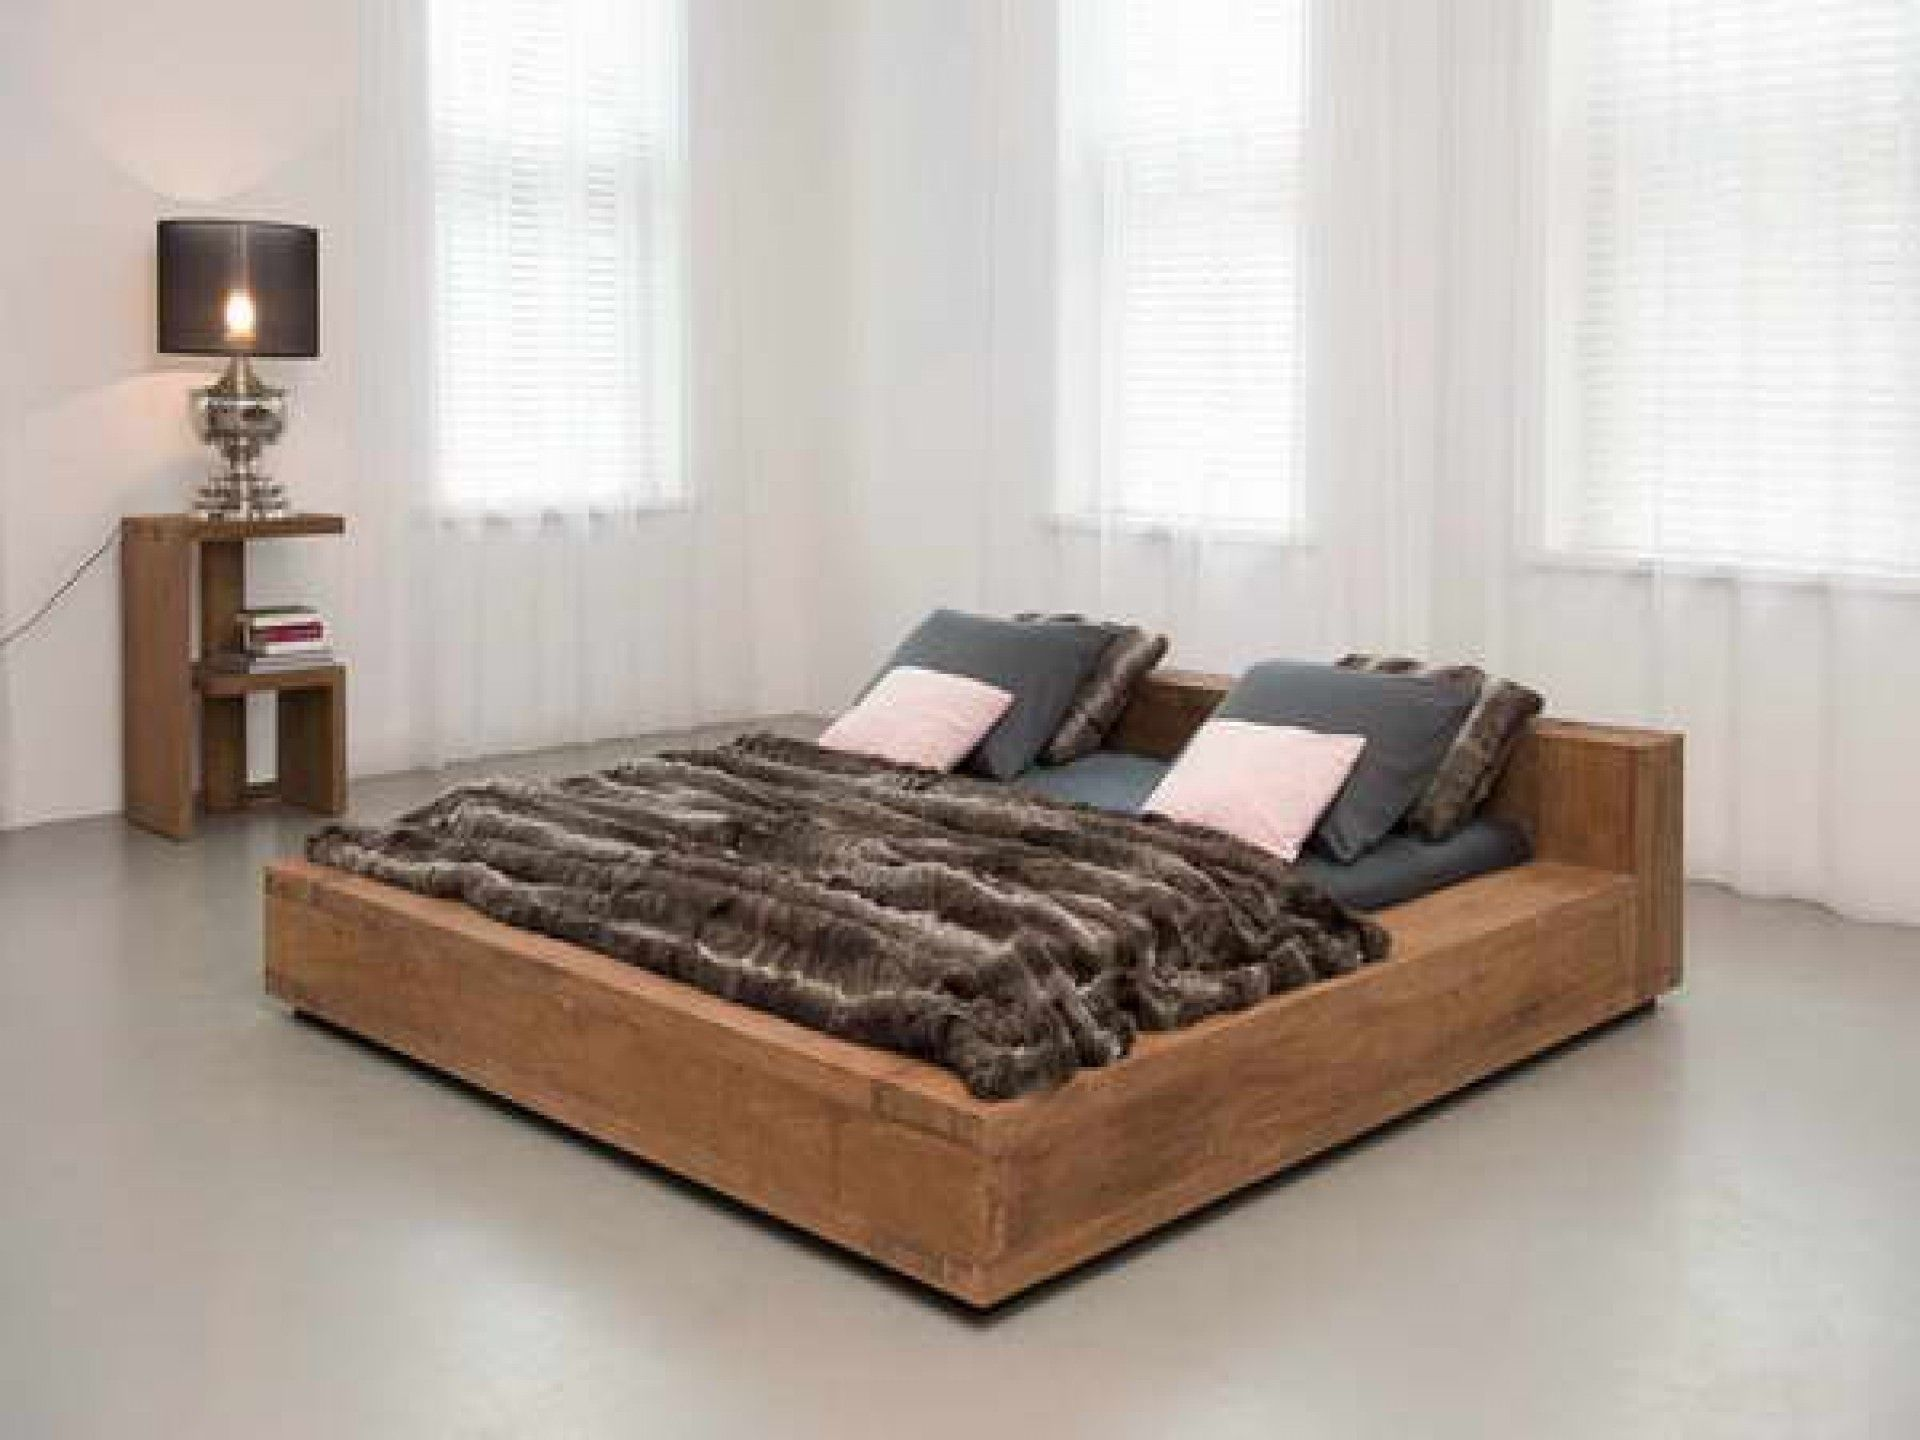 Low Profile Bed Frame Queen Low Bed Frame Bed Frame Design Low